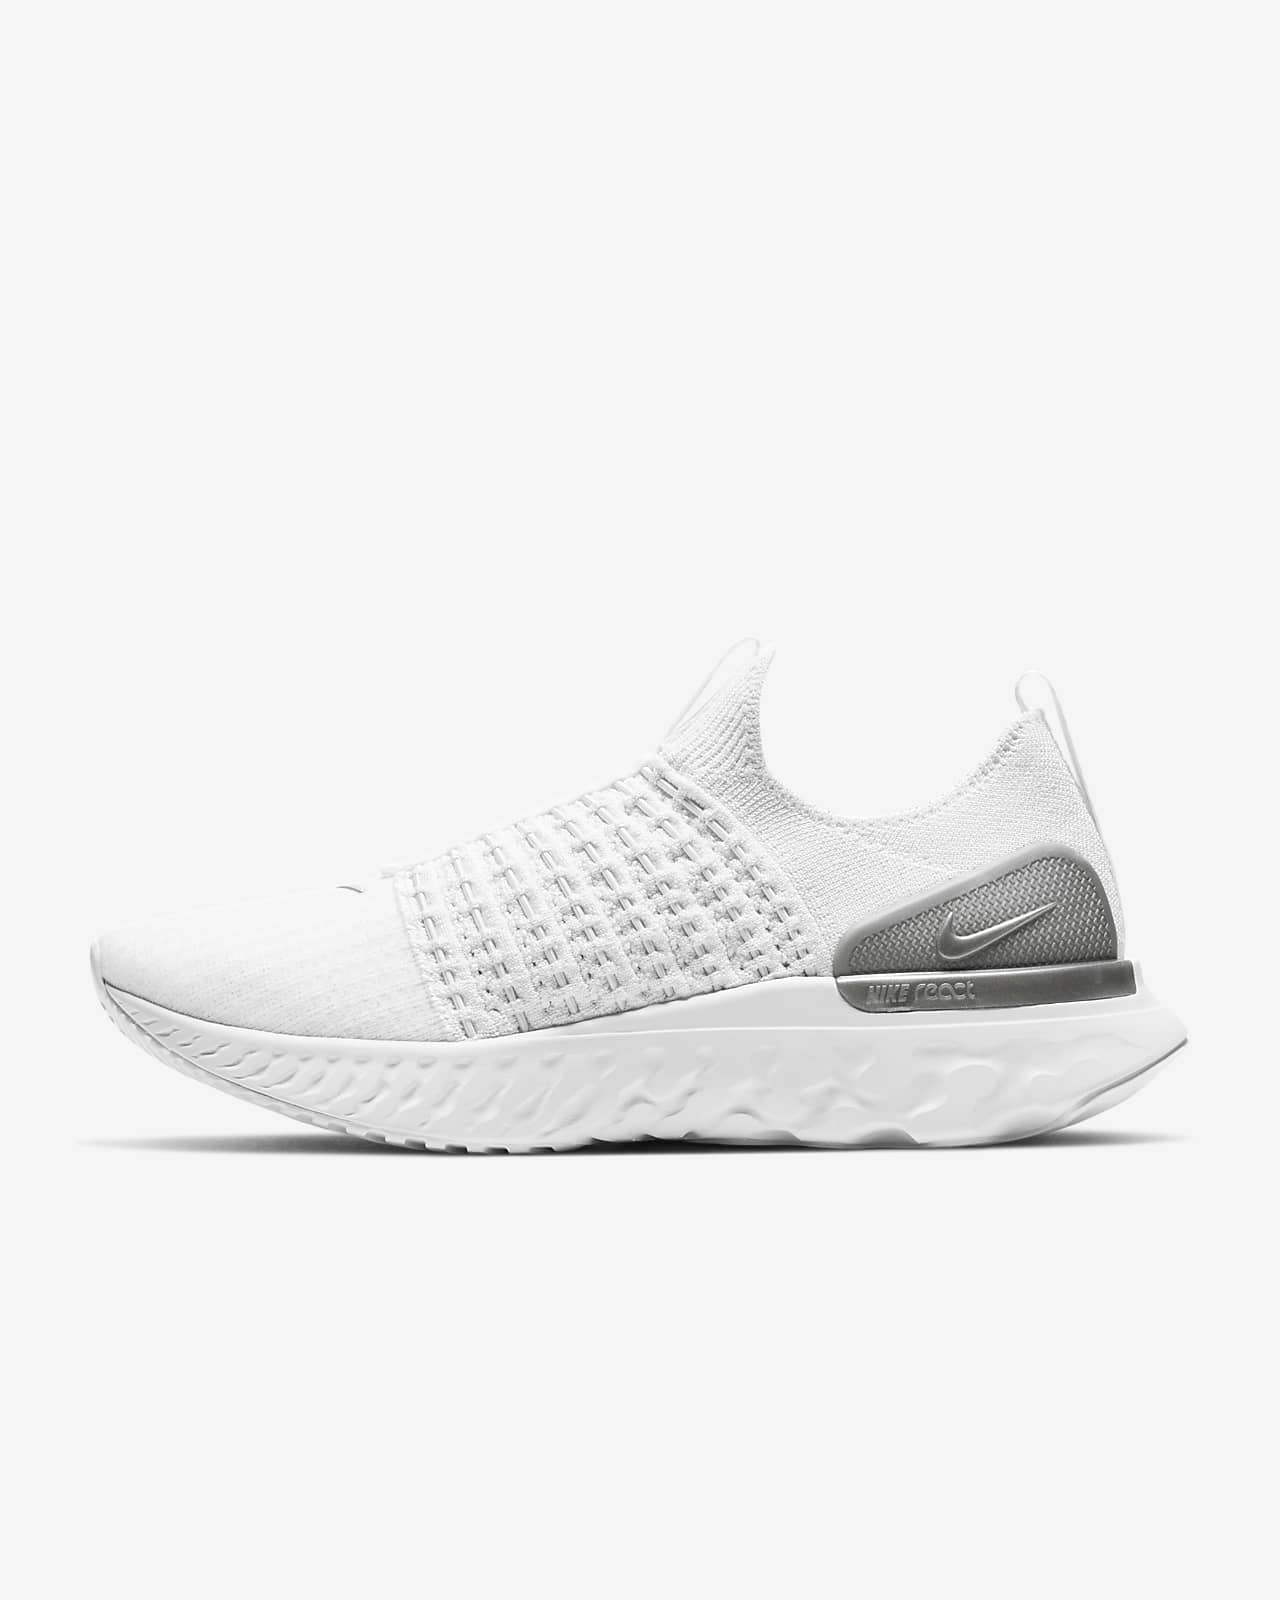 Nike React Phantom Run Flyknit 2 Women's Running Shoe